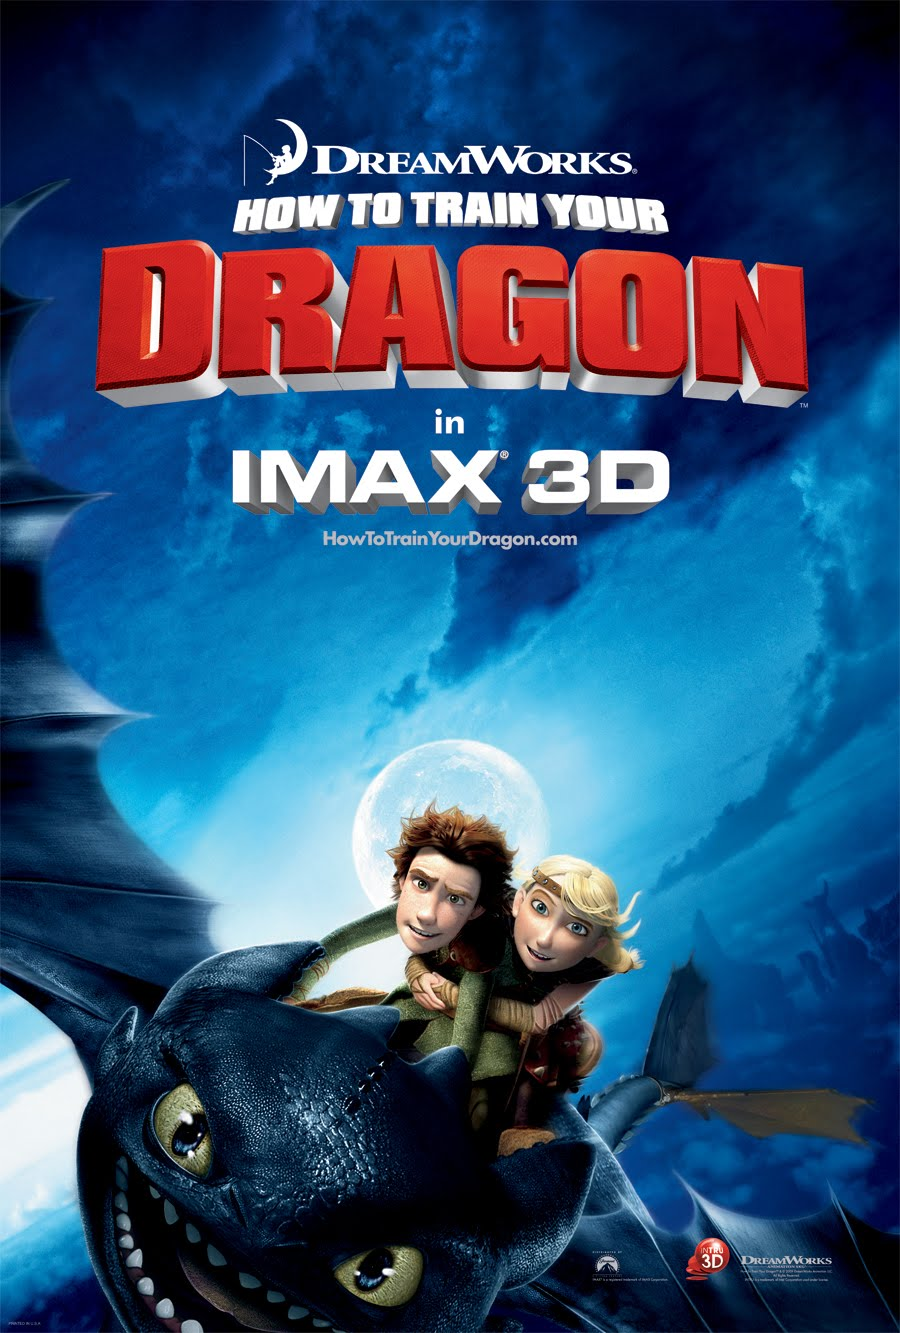 [How+to+train+your+dragon+imax+poster.jpg]